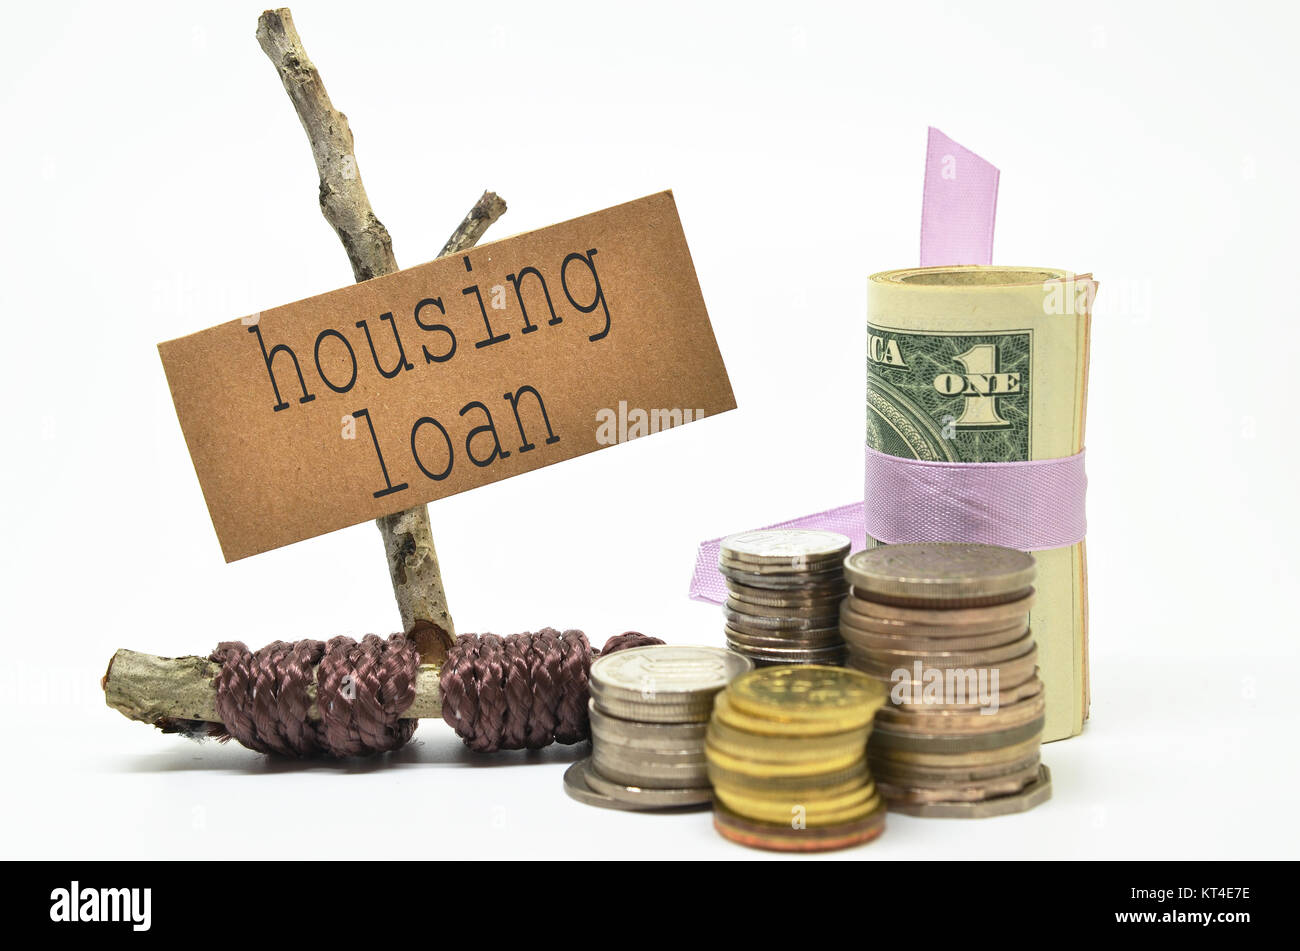 Coins and money with housing loan label - Stock Image